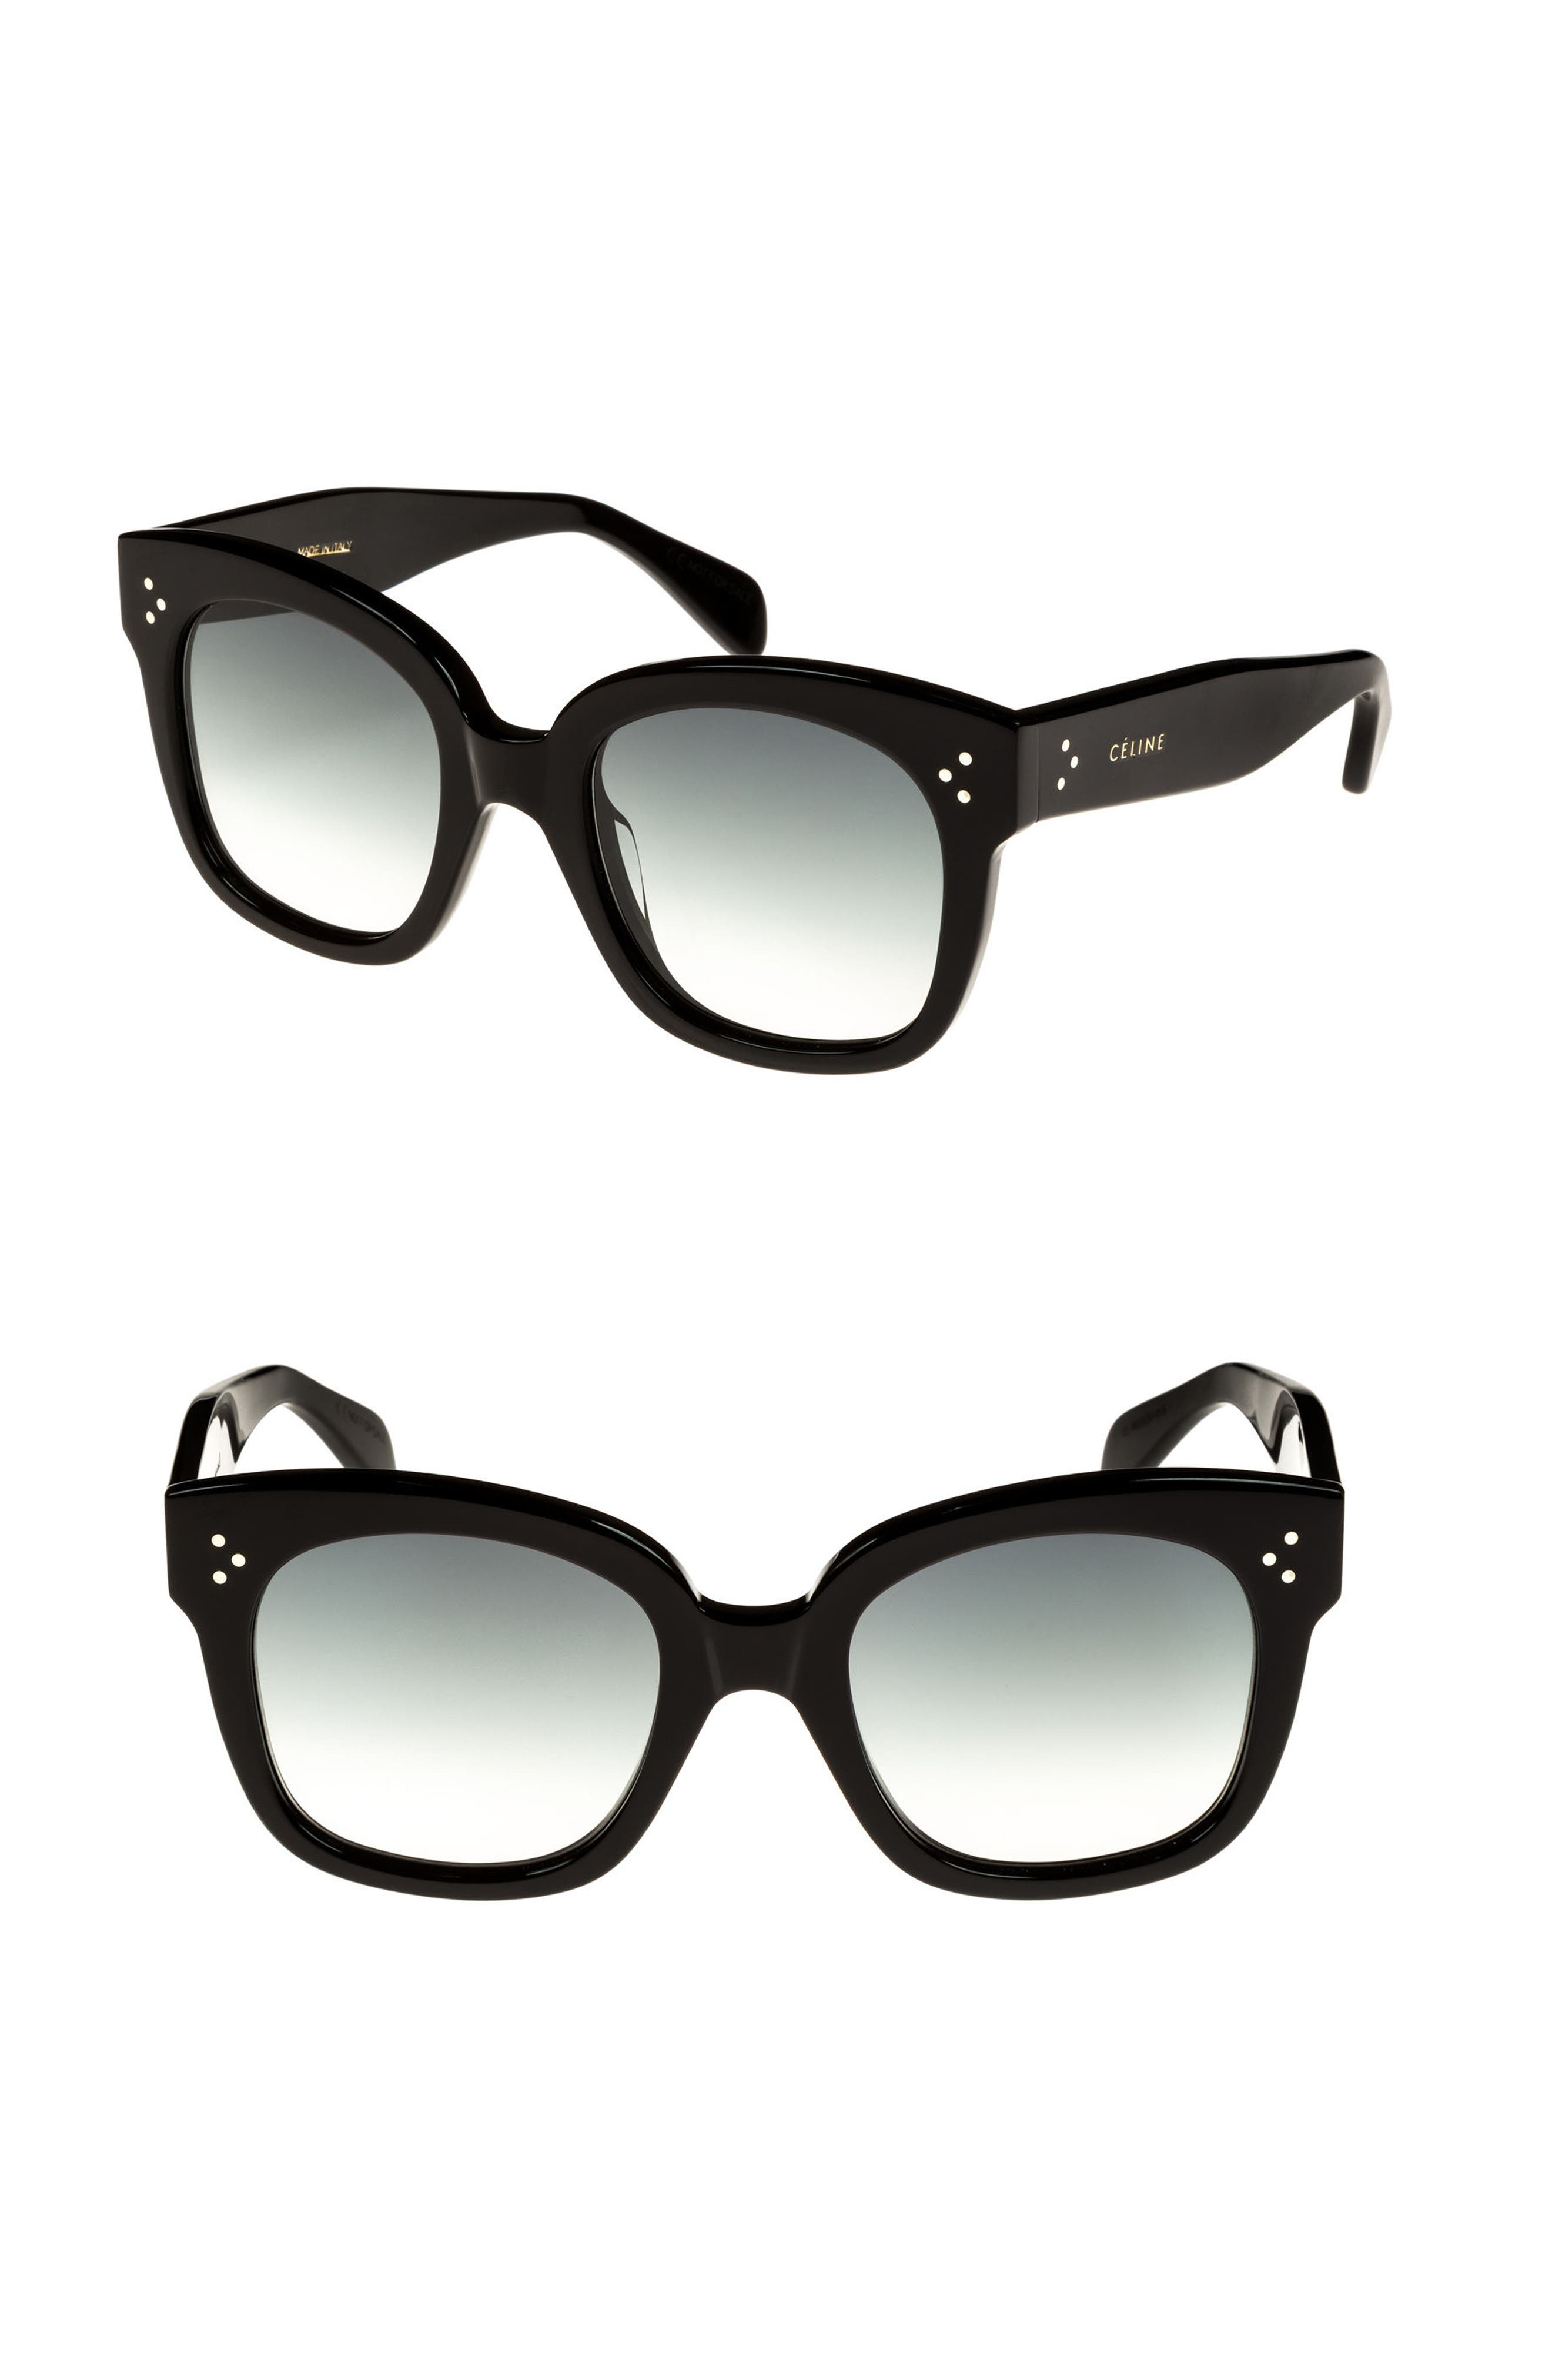 Main Image - Céline 54mm Square Sunglasses